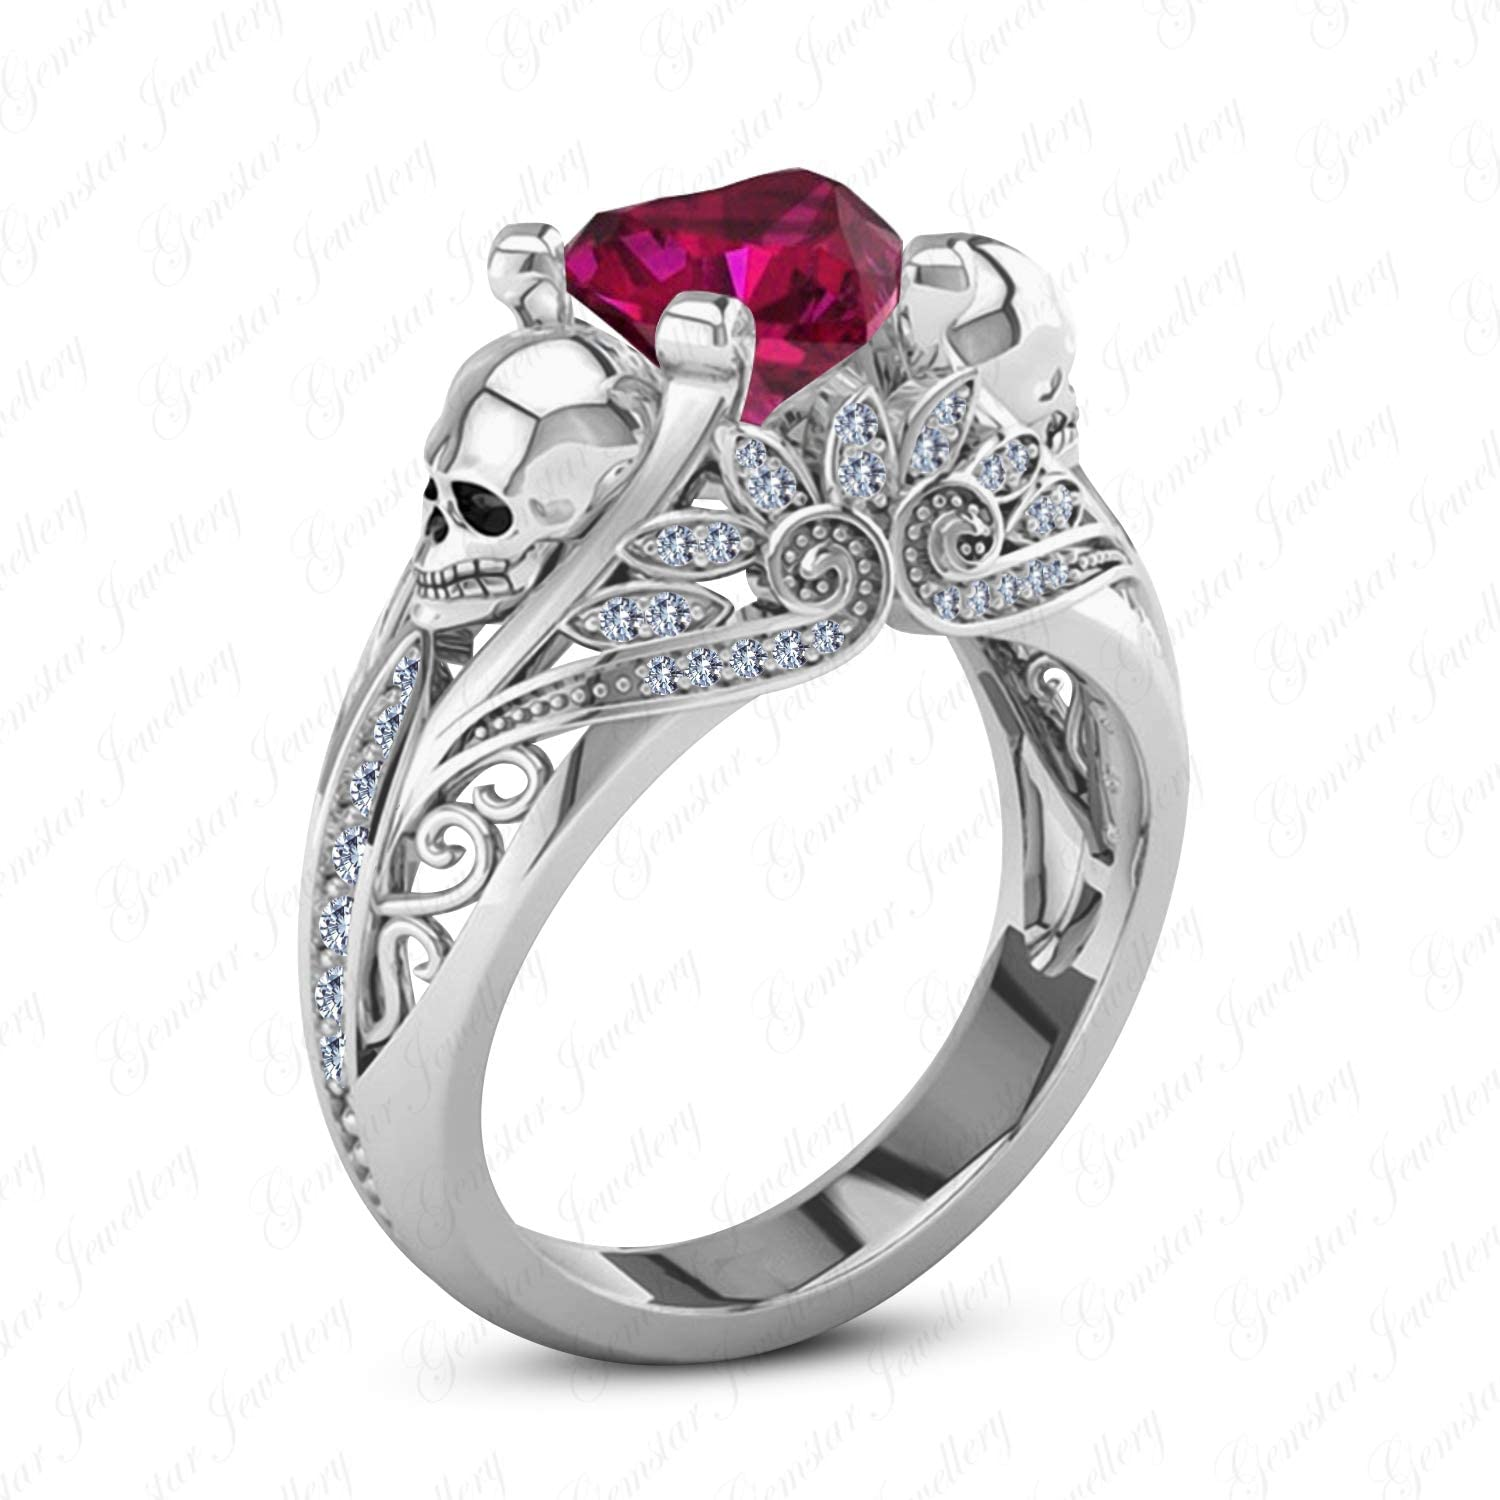 Ruby Ring Rose Gold Plated  925 Sterling Silver Ring Wedding Ring Engagement Ring Party Wear Ring, Daily Wear Ring